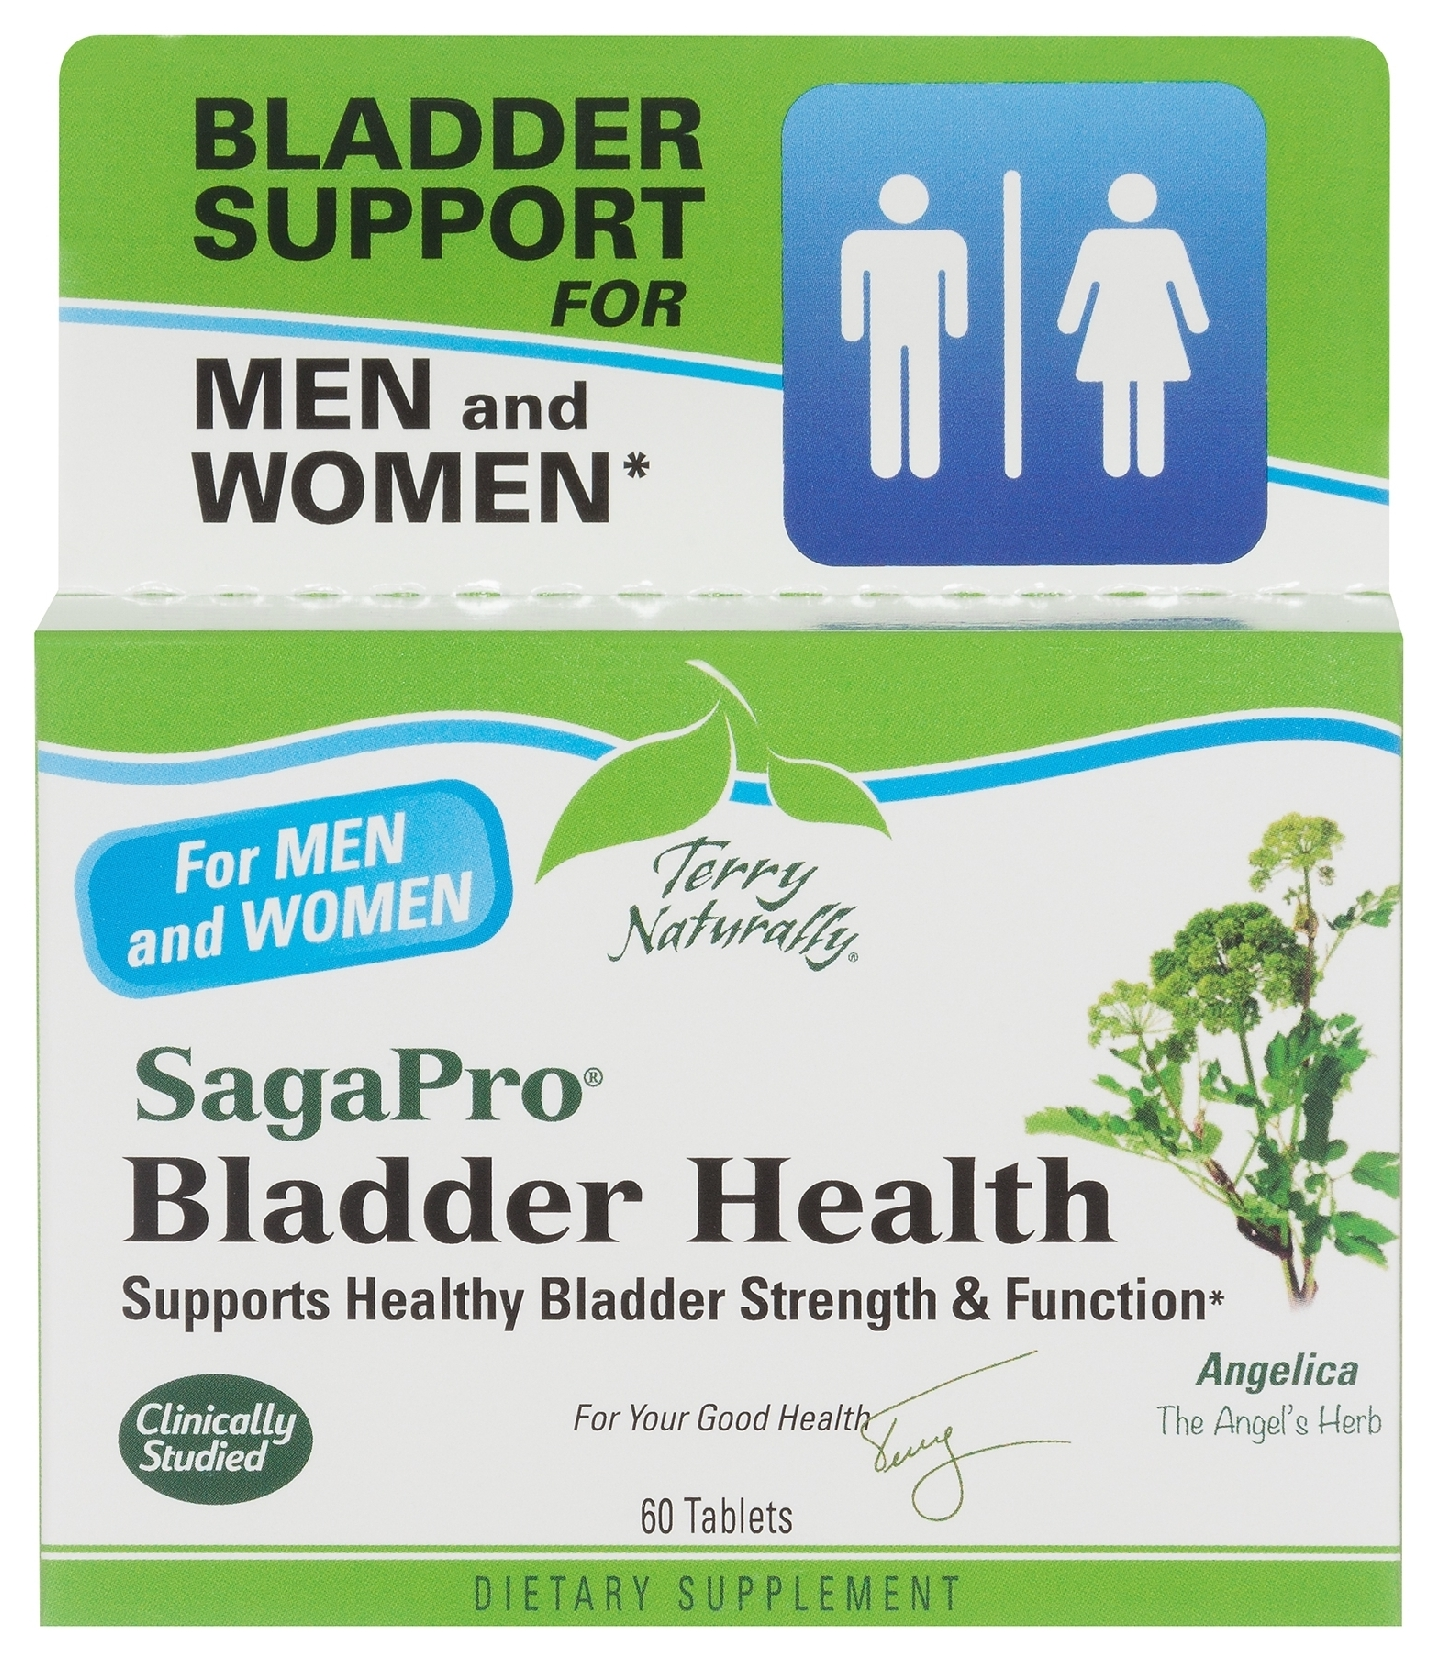 Terry Naturally SagaPro Bladder Health 60 tabs by EuroPharma